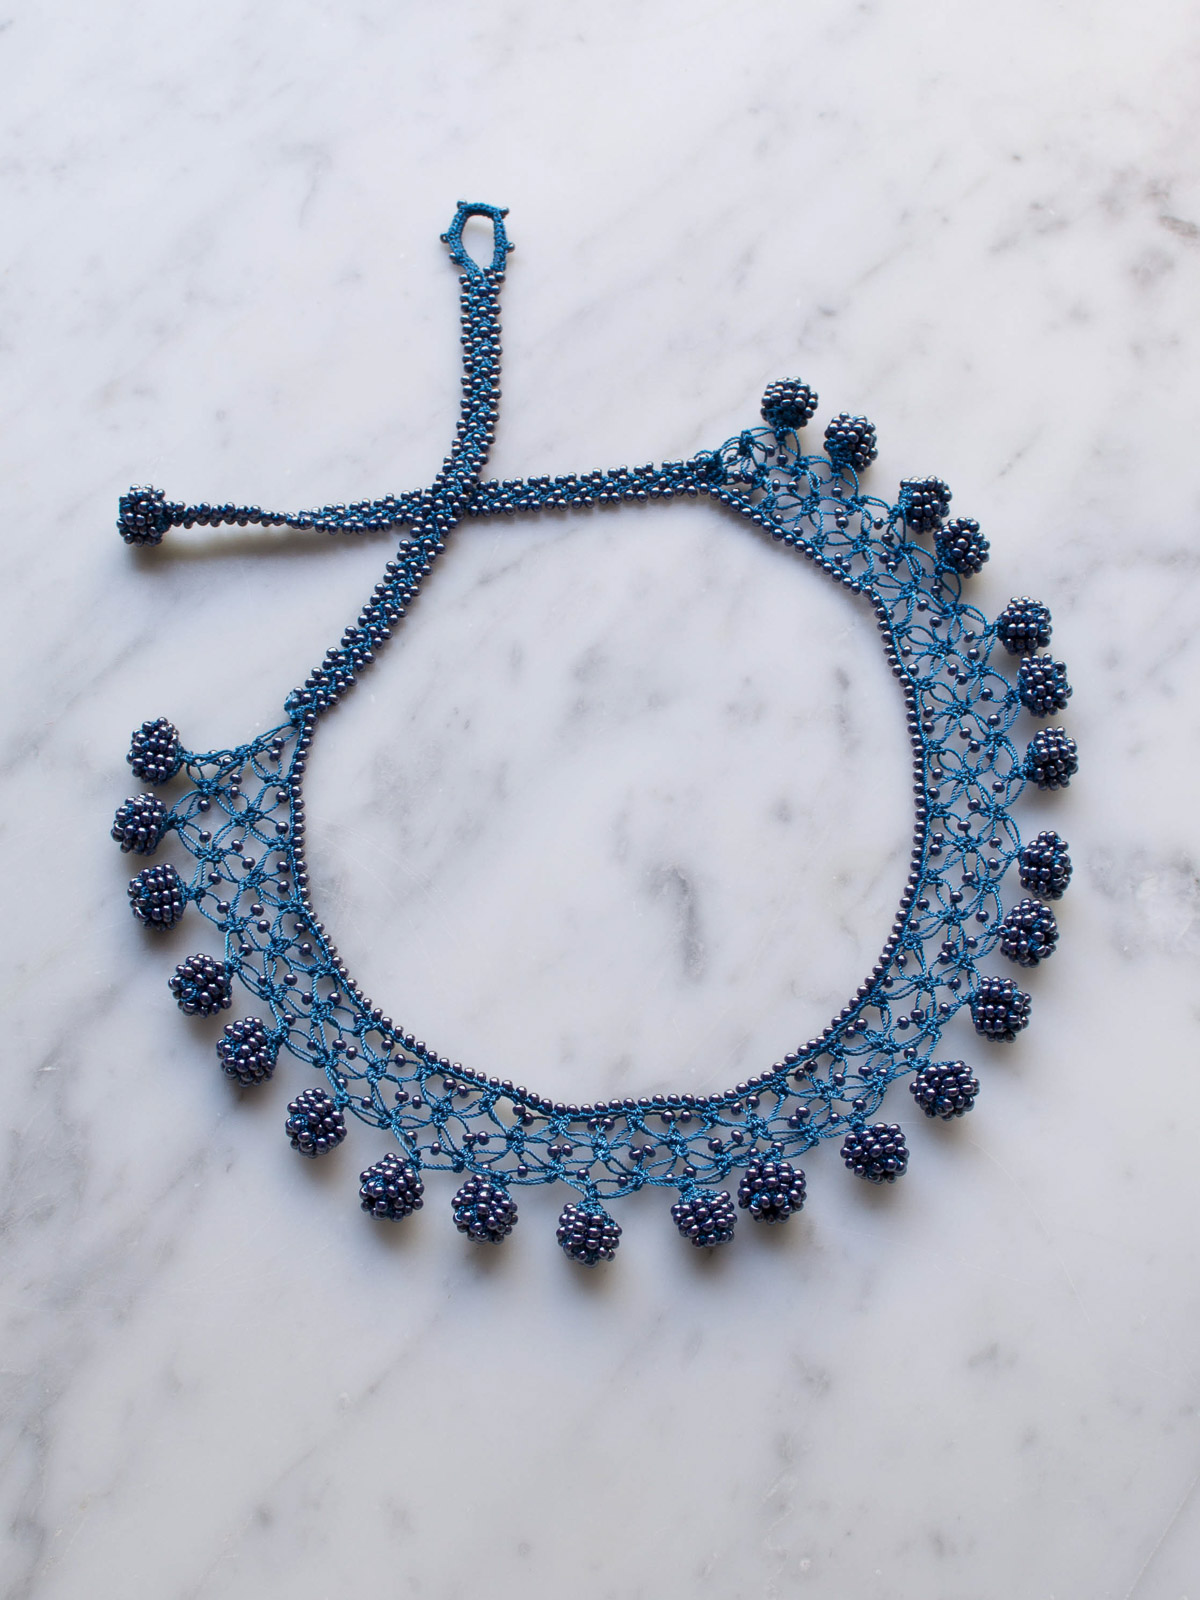 Crocheted Necklace Dots Crochet Necklaces Jewellery Ottomania